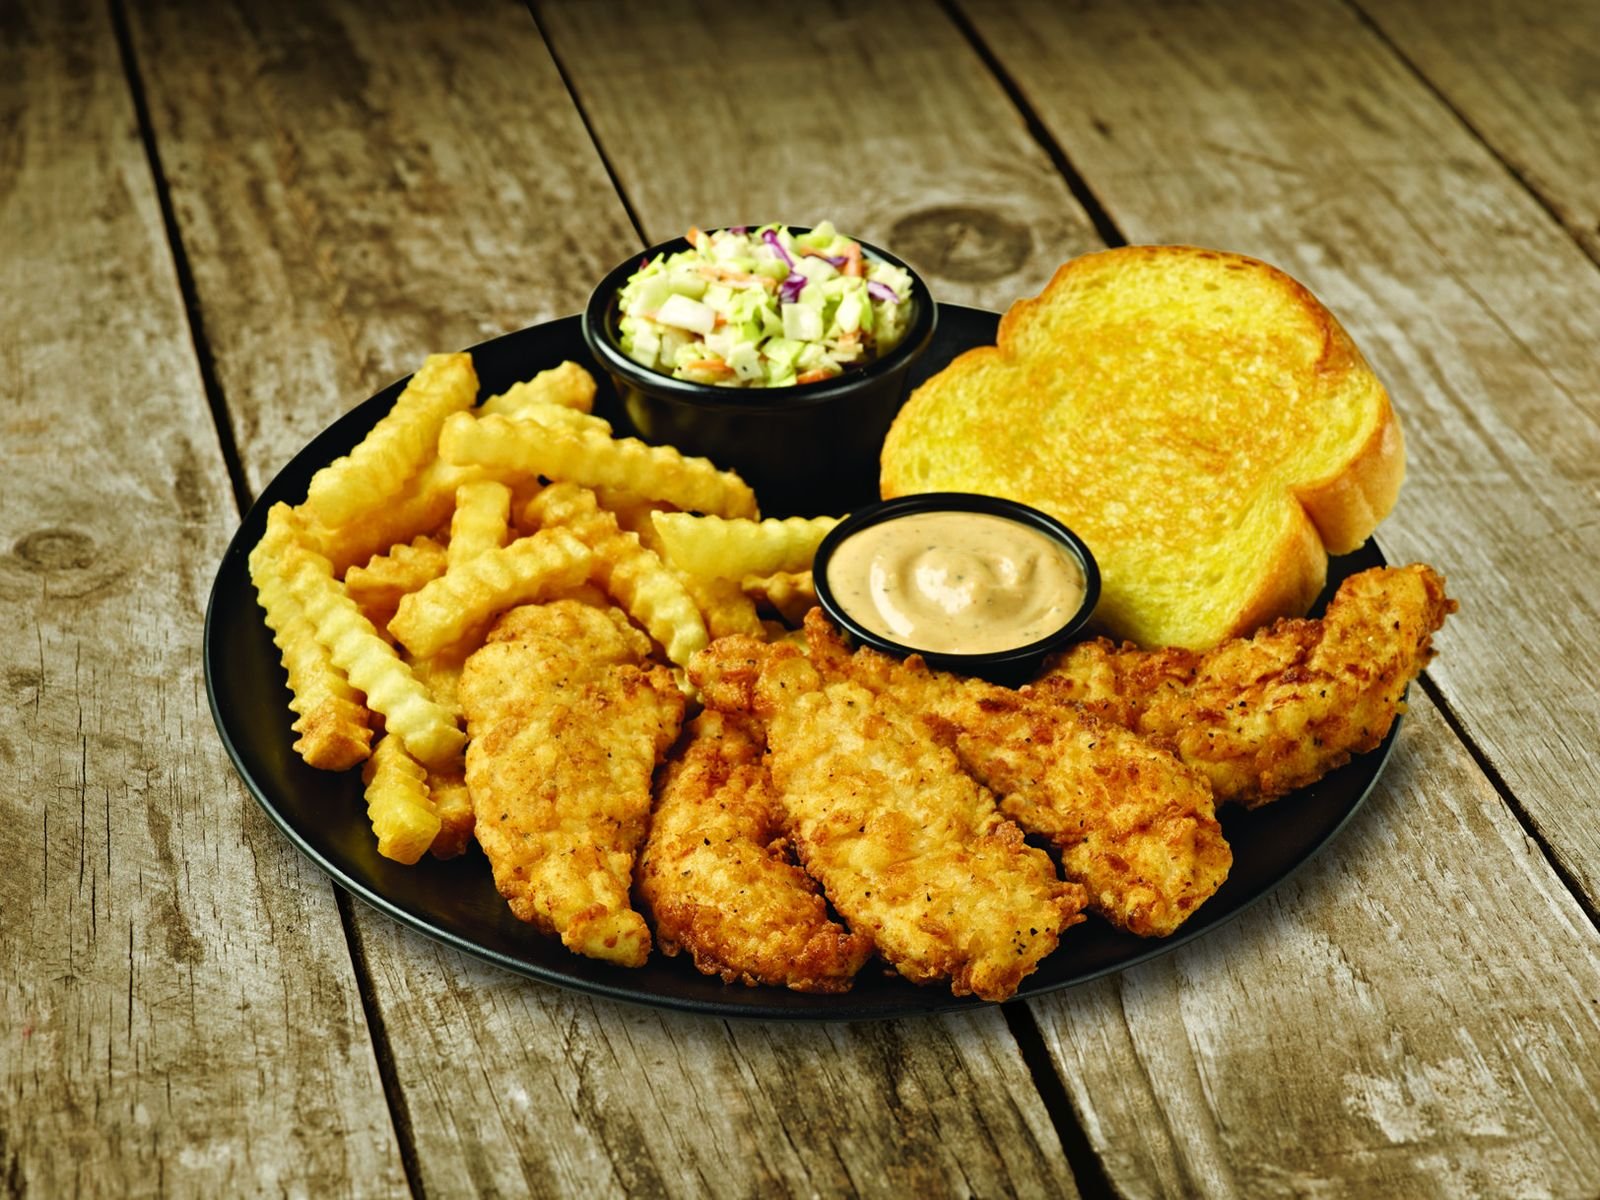 Huey Magoo's Chicken Tenders Announces Its 100th Franchise Sold With Latest Florida Expansion